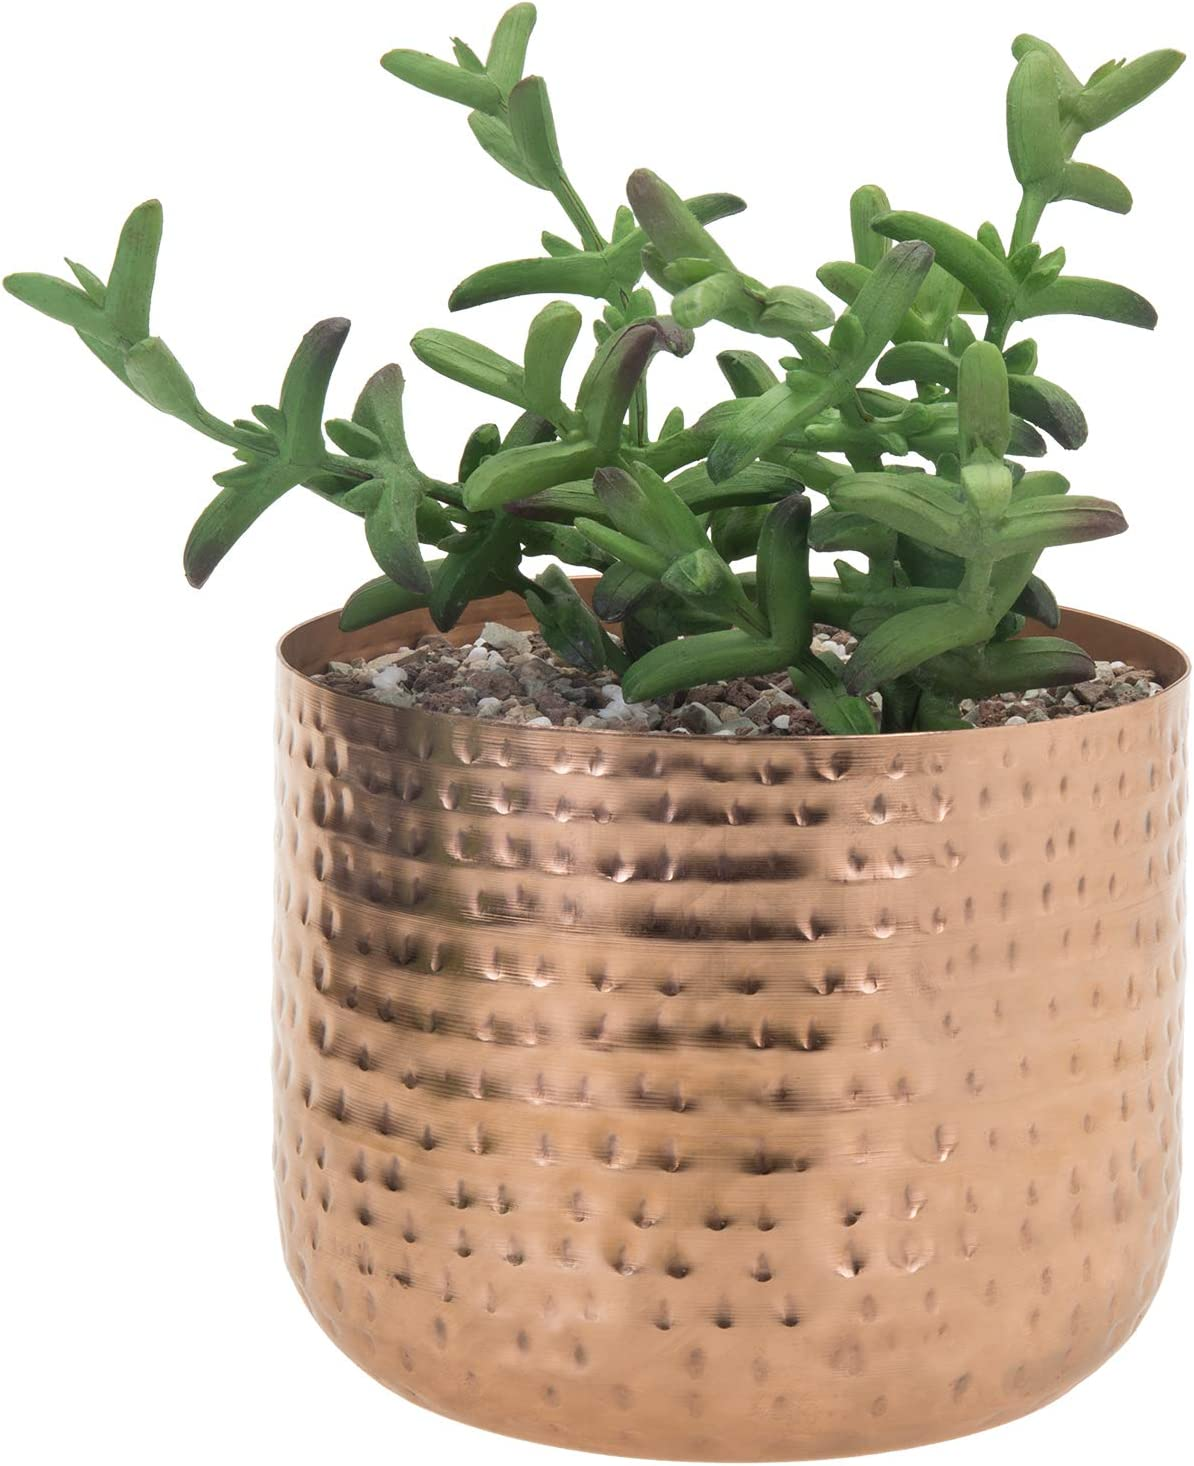 MyGift 6-inch Some reservation Hammered Style Metal Planter Succulent Wholesale Copper-Tone